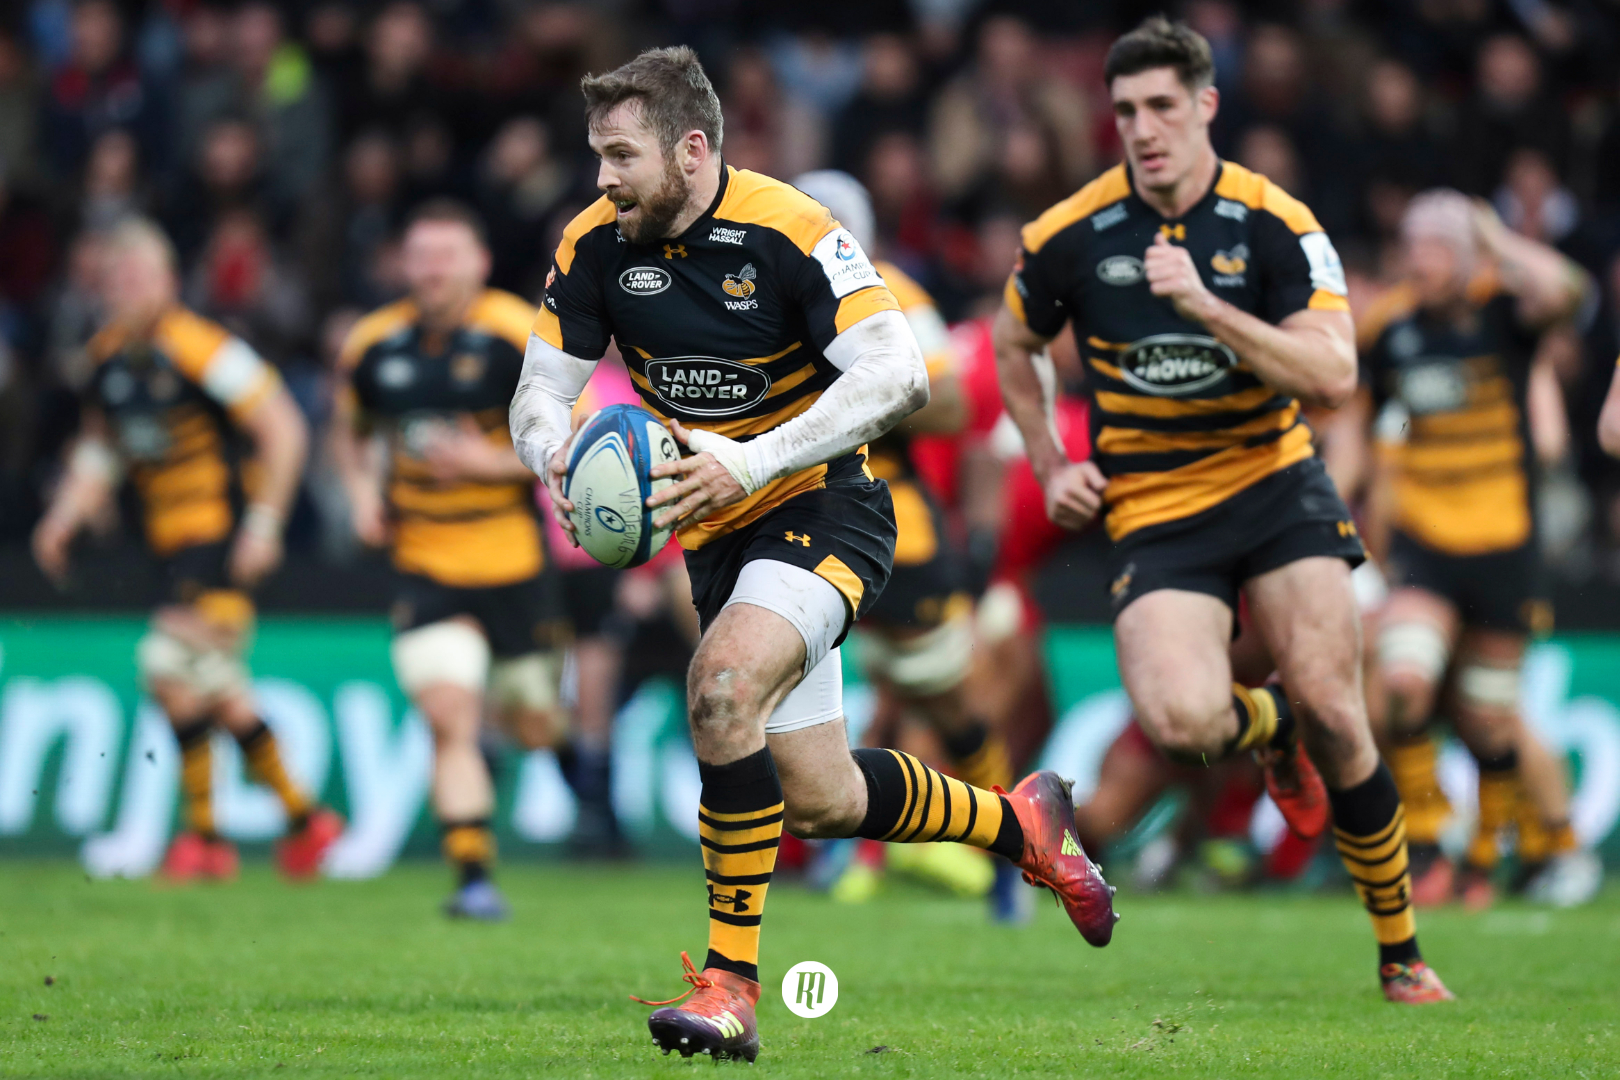 Two-try Hughes returns to pre-England form in Worcester victory, while Solomons bemoans Warriors' lack of pressure